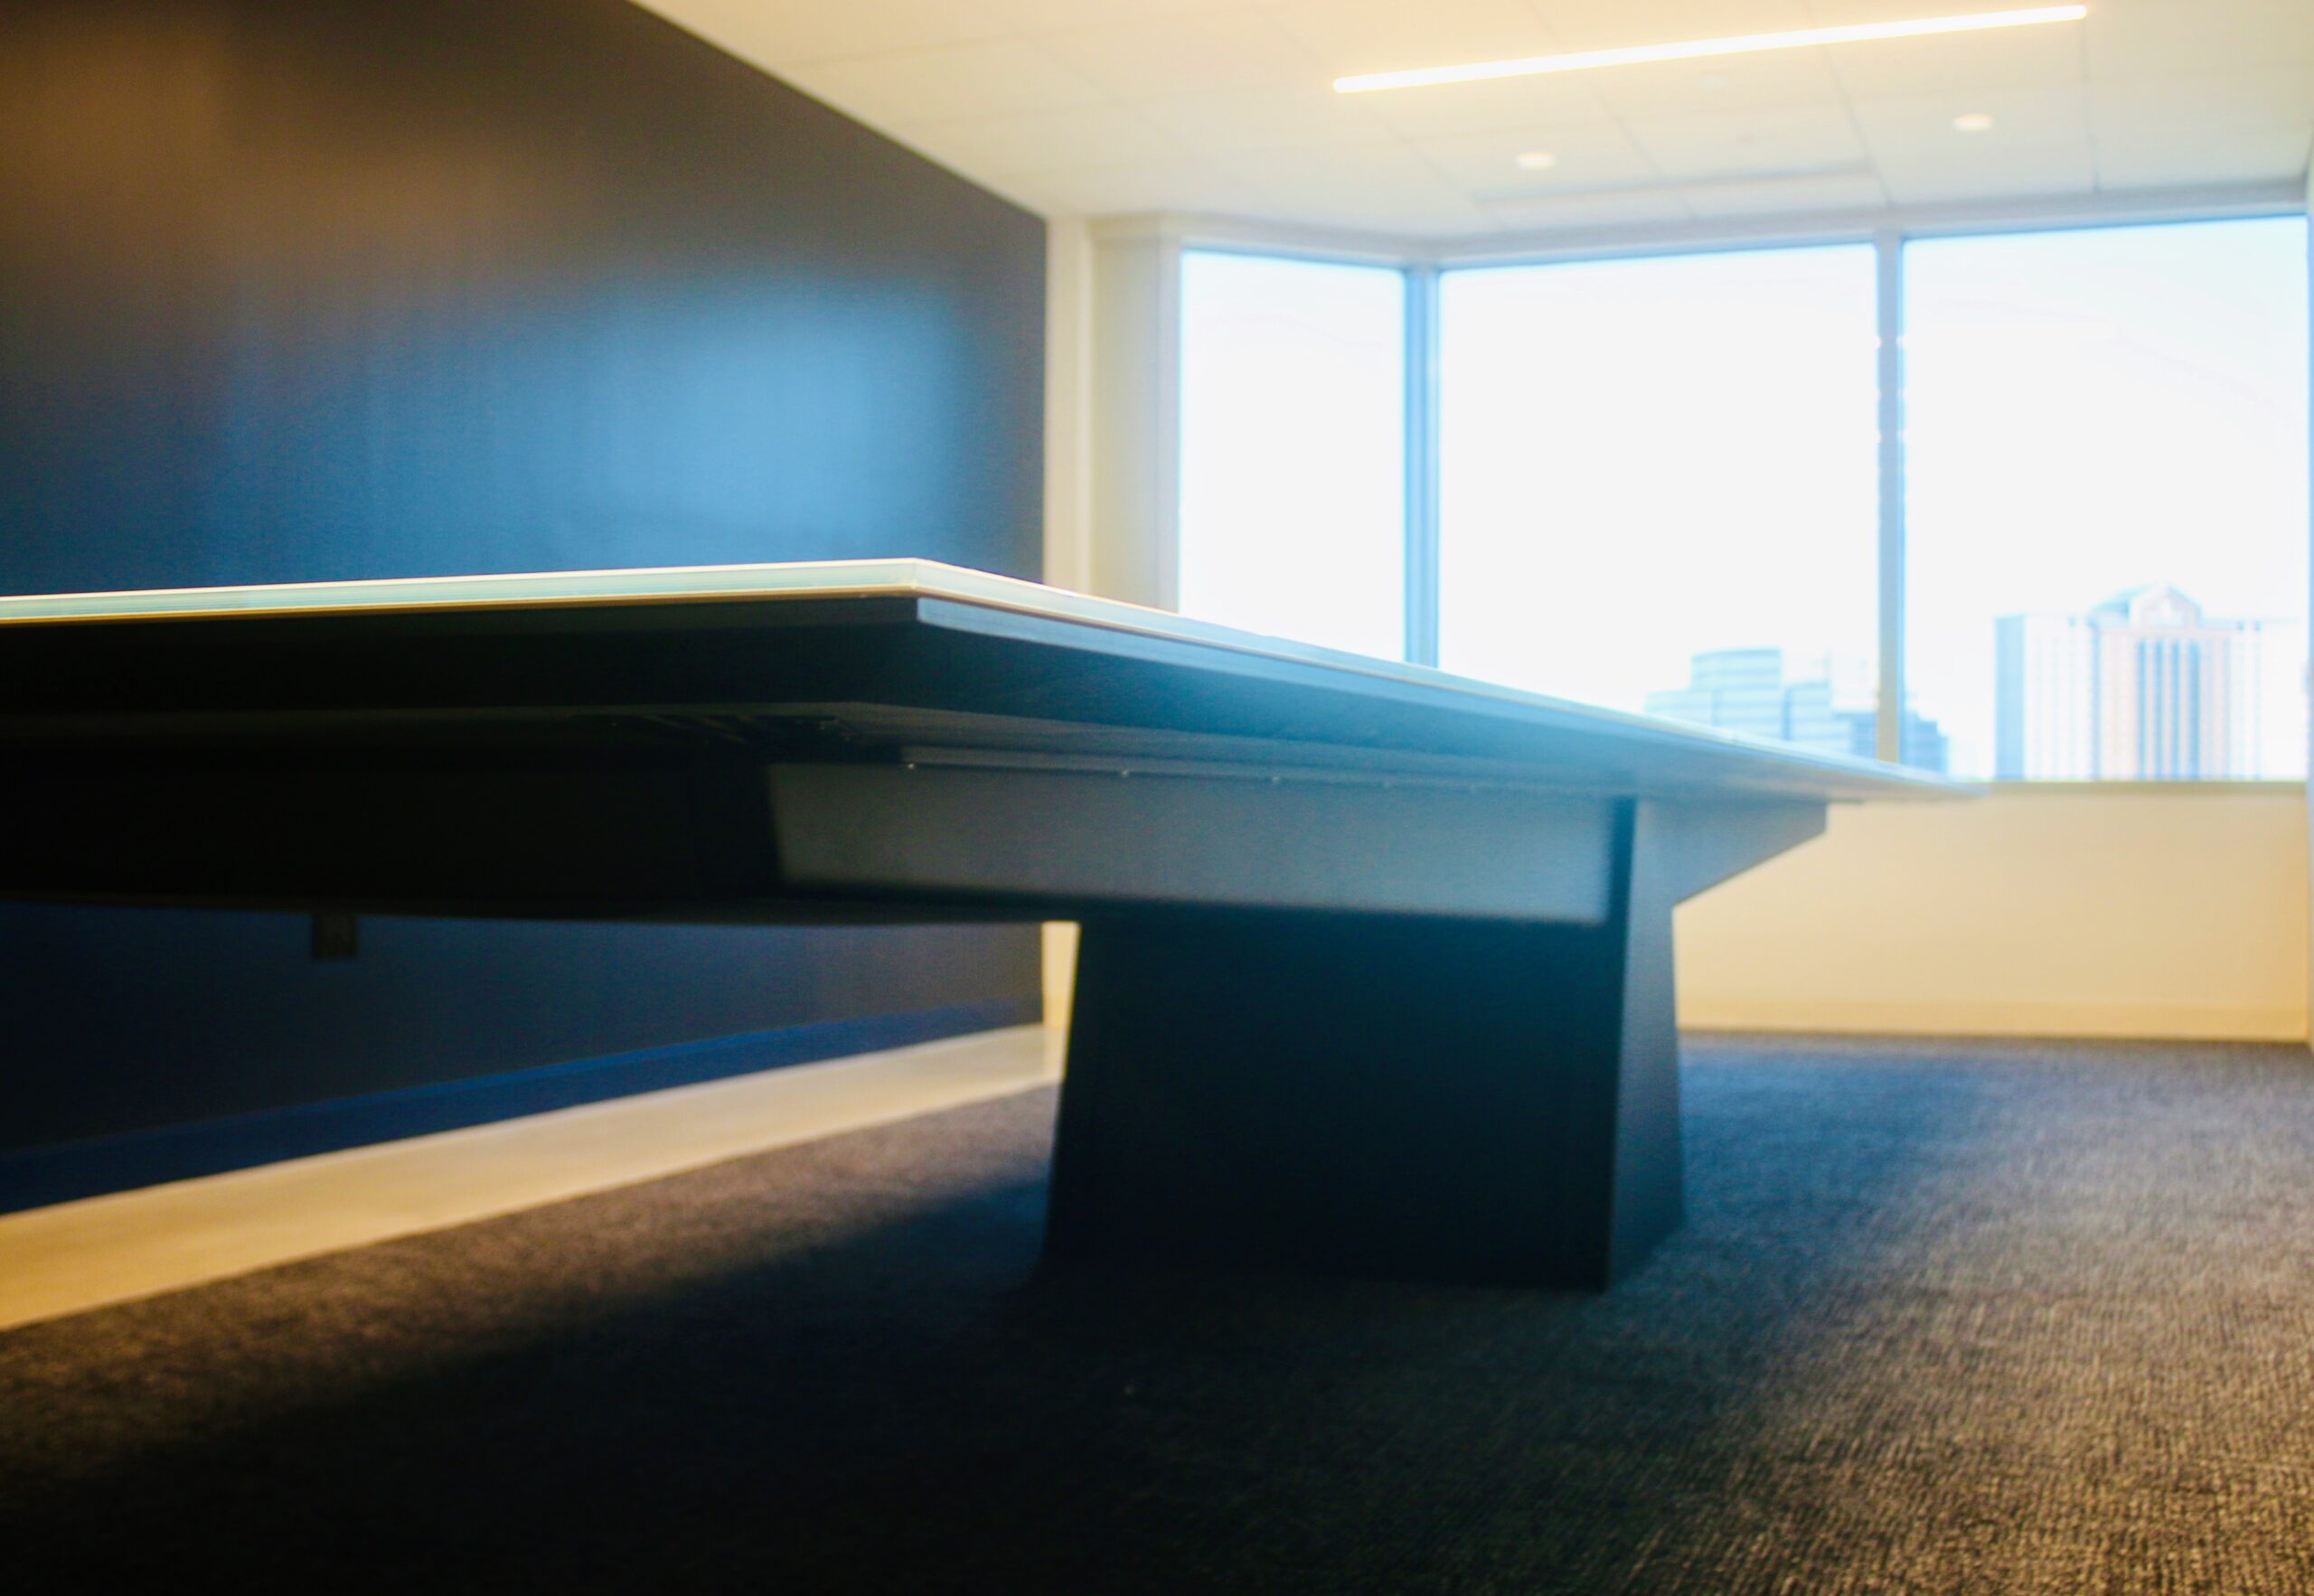 Low angle photo of conference table